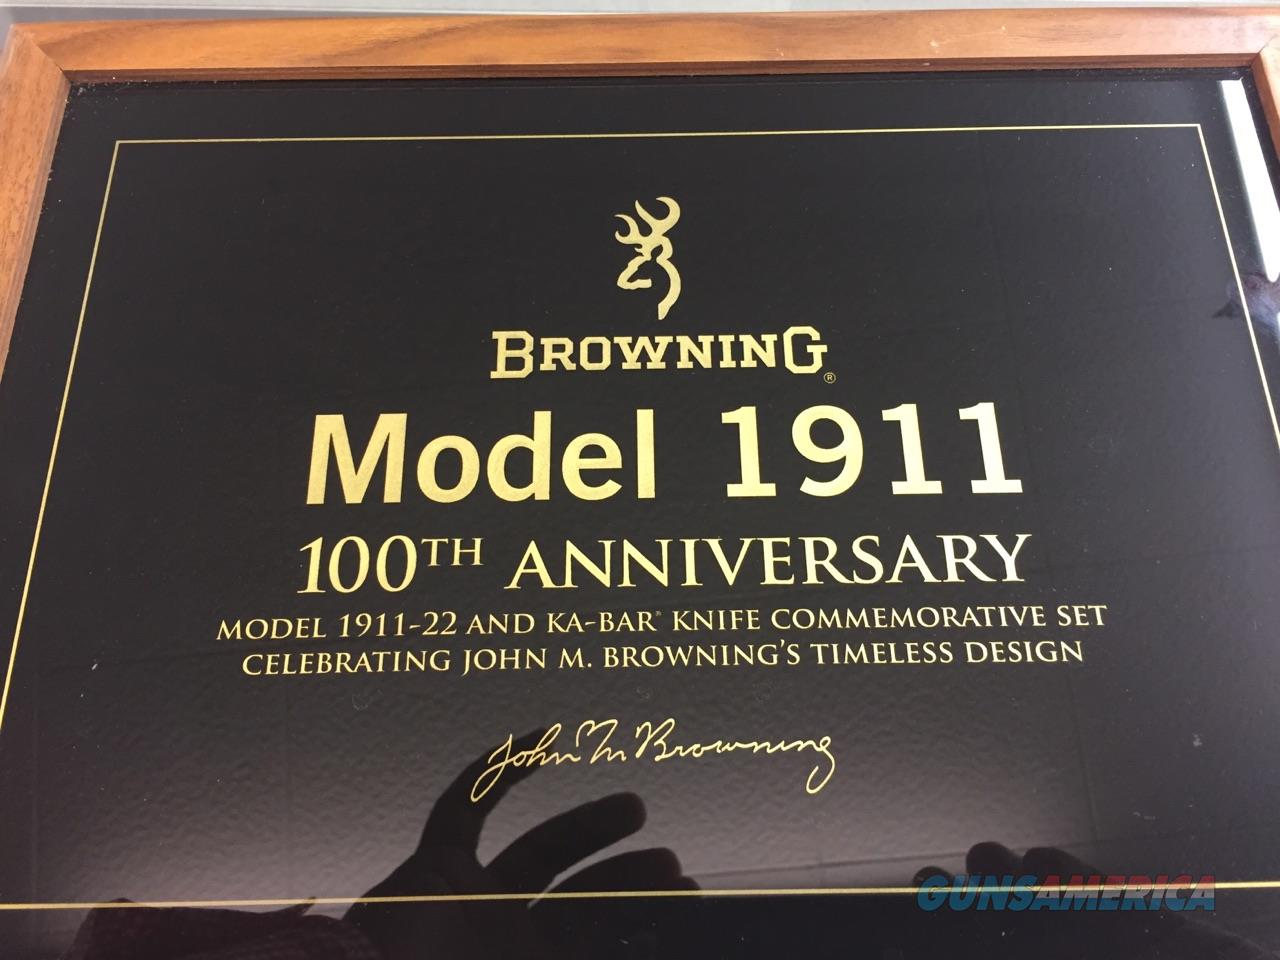 Browning 1911-22 100th Anniversary Commemorative.  Guns > Pistols > Browning Pistols > Other Autos